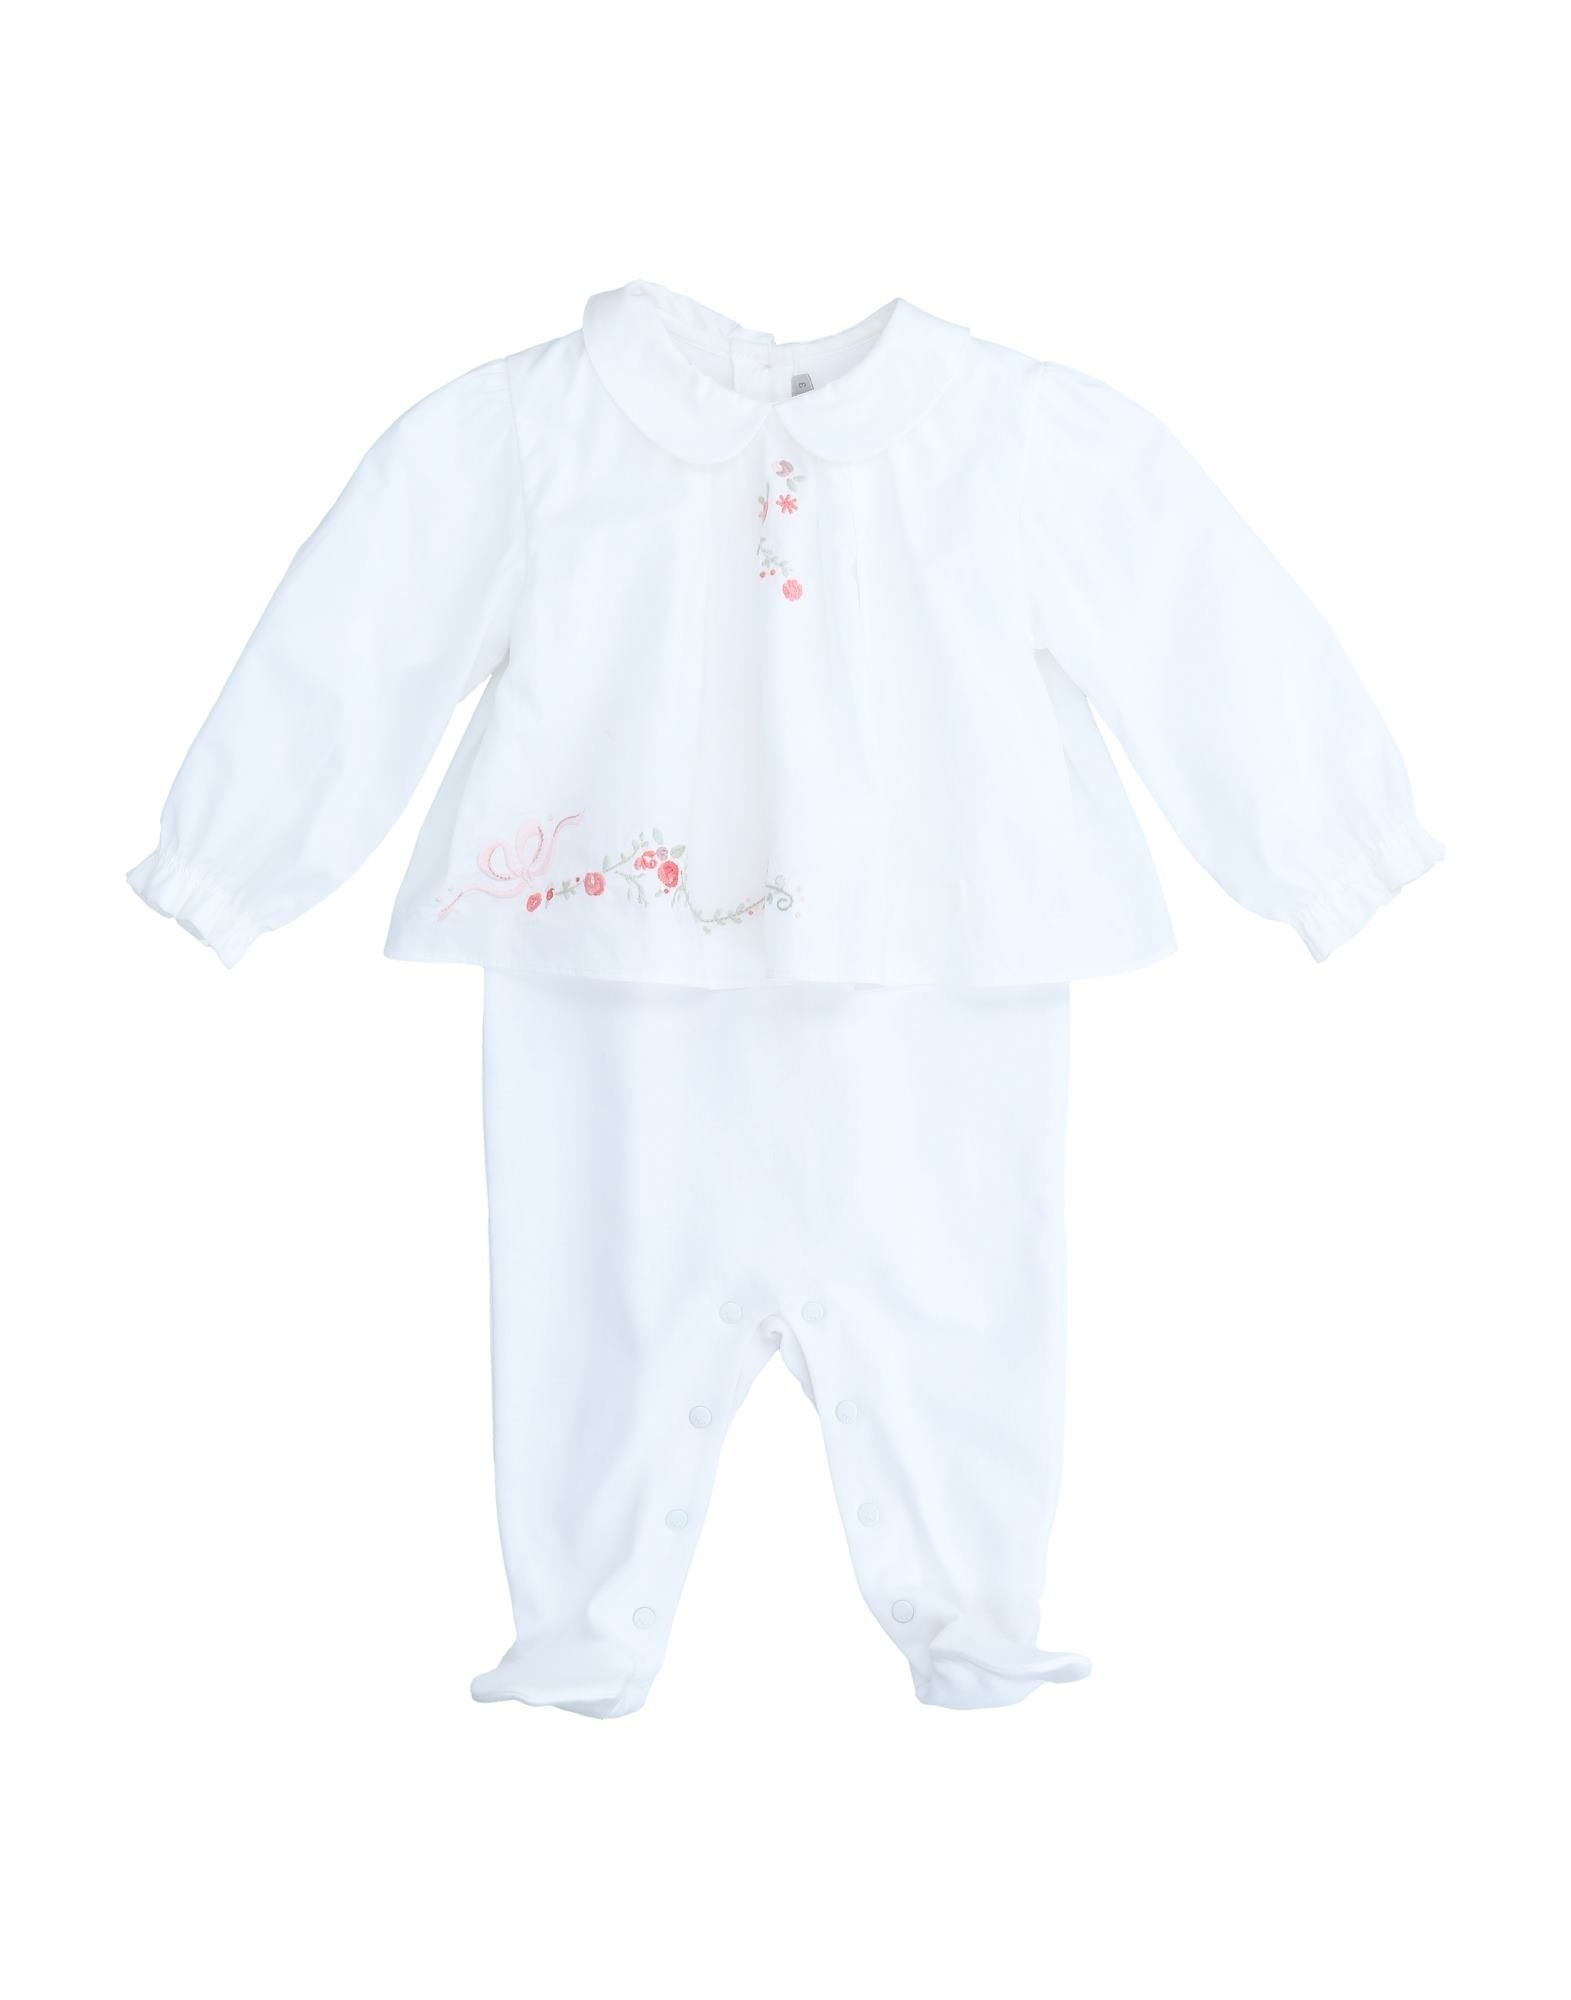 Baby Dior clothing for baby girl   toddler 0-24 months  336edb11b76